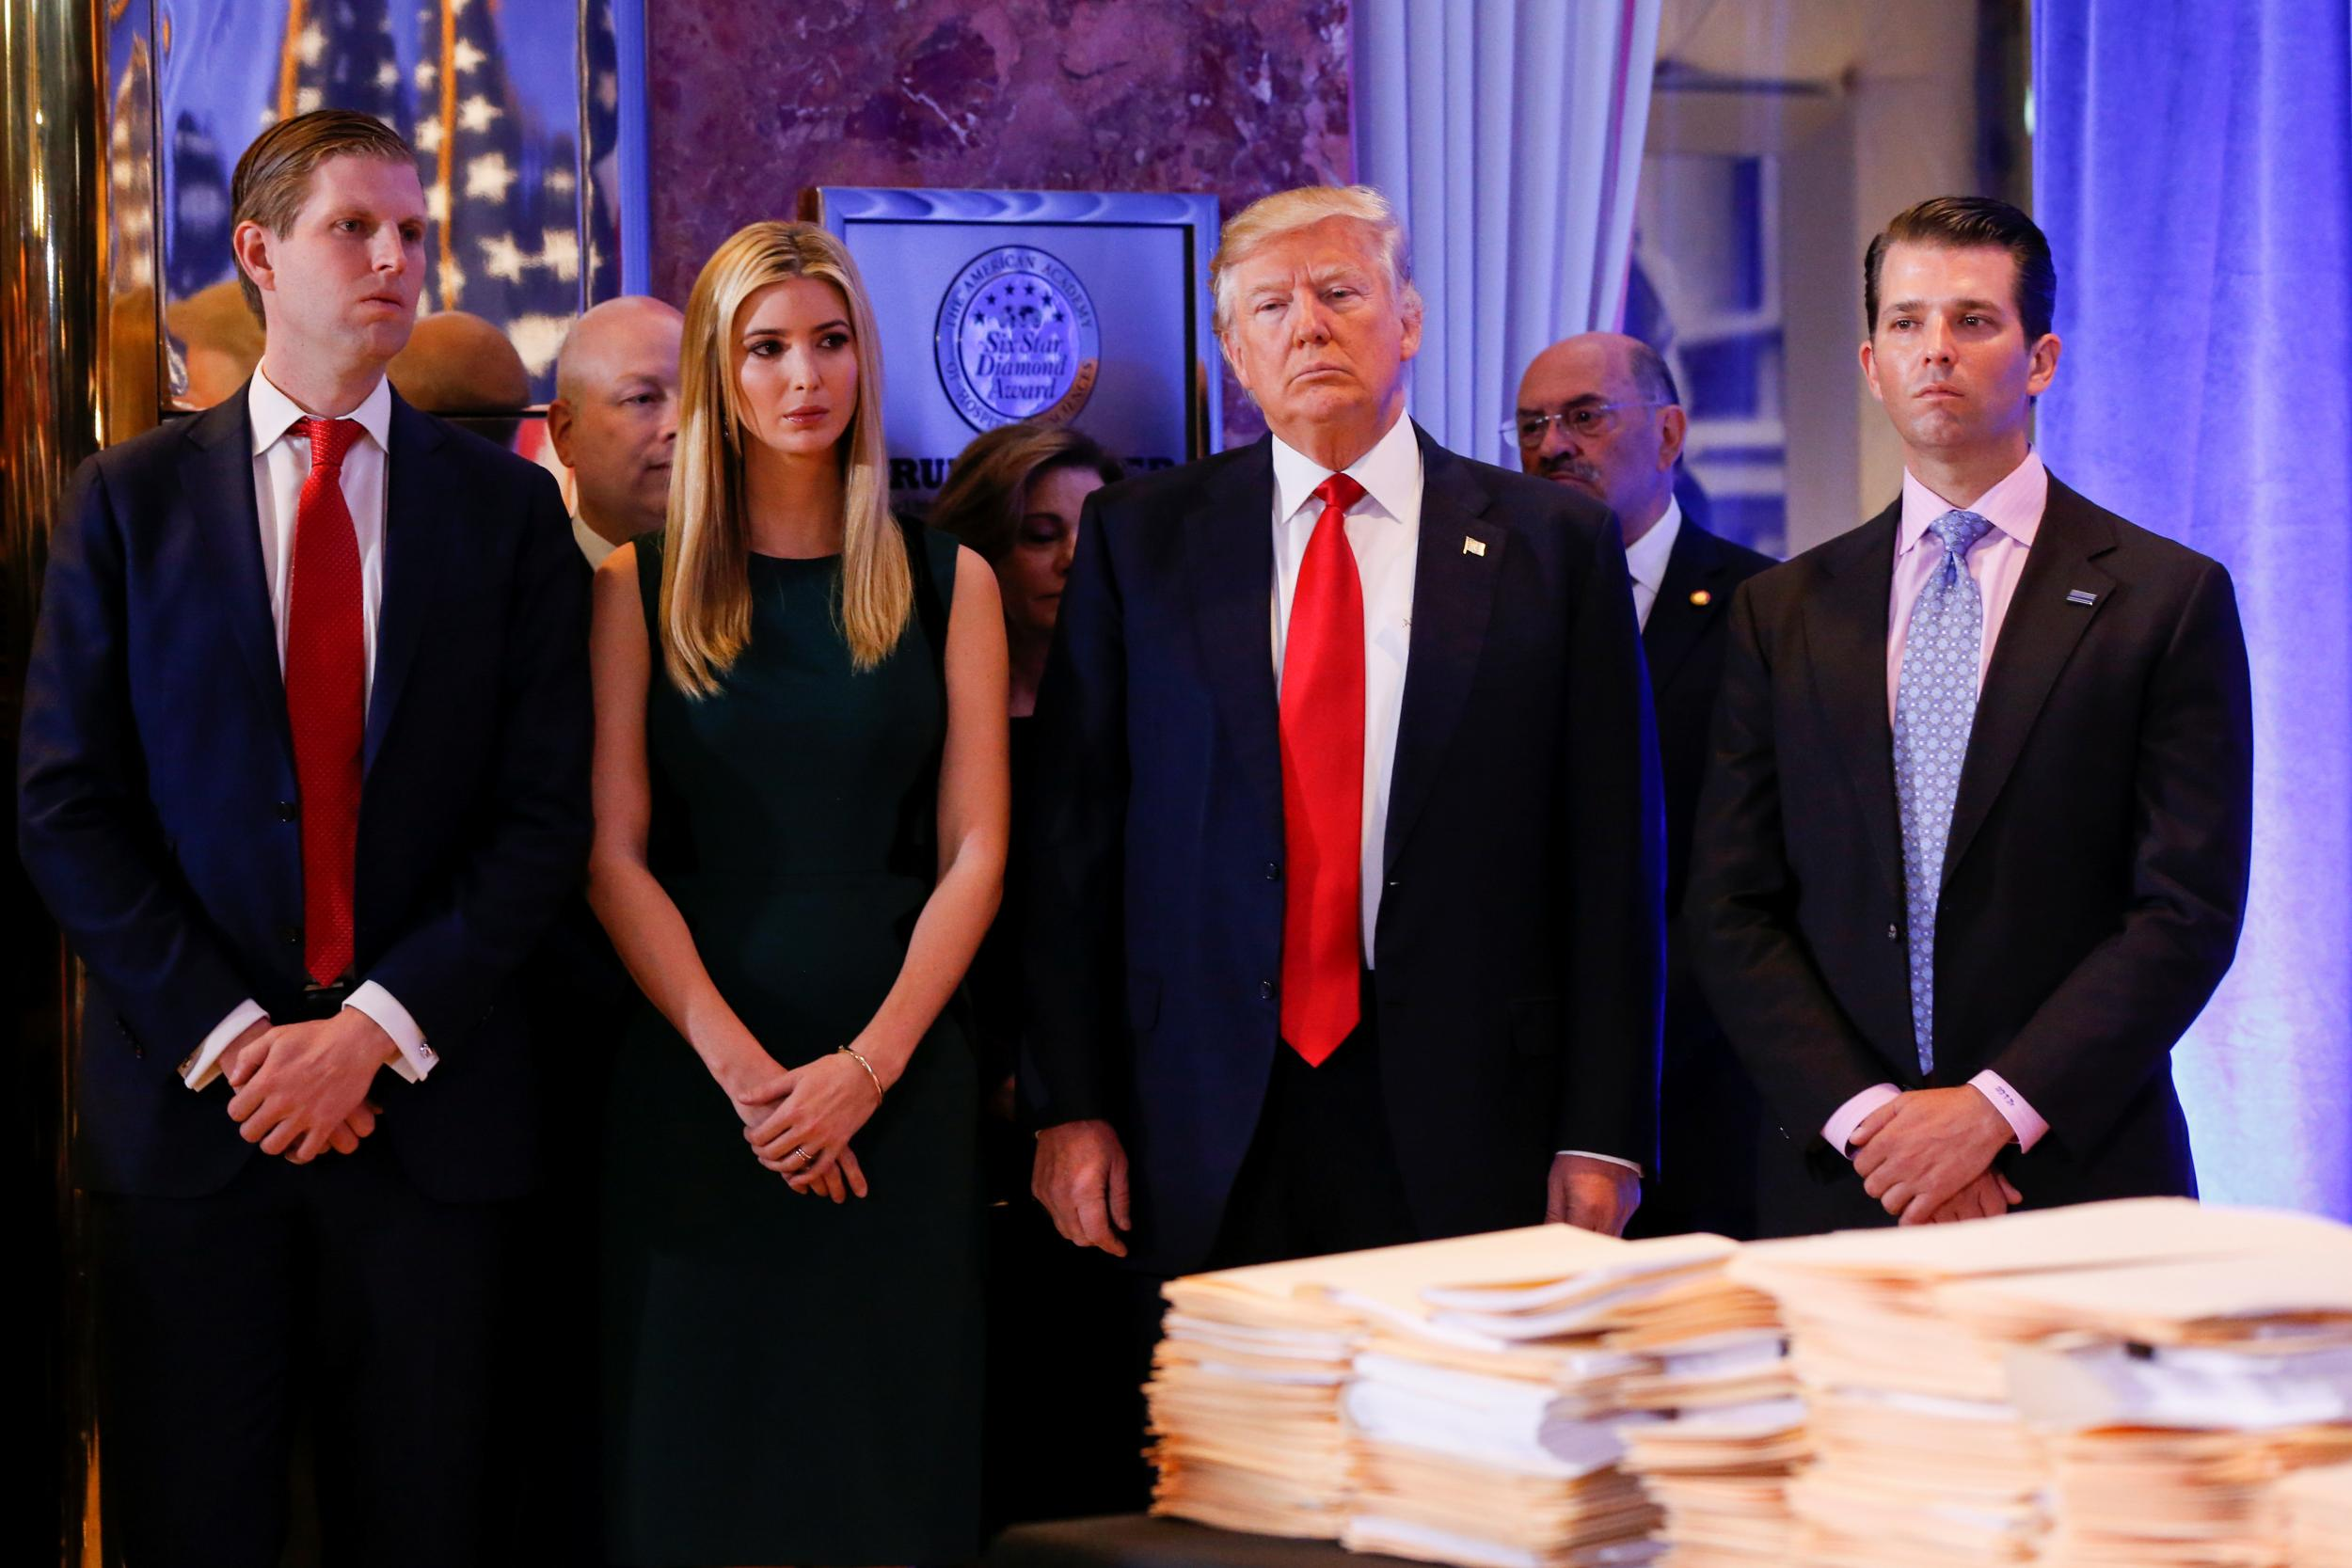 New Trump Foundation investigation 'may yield criminal charges against first family'